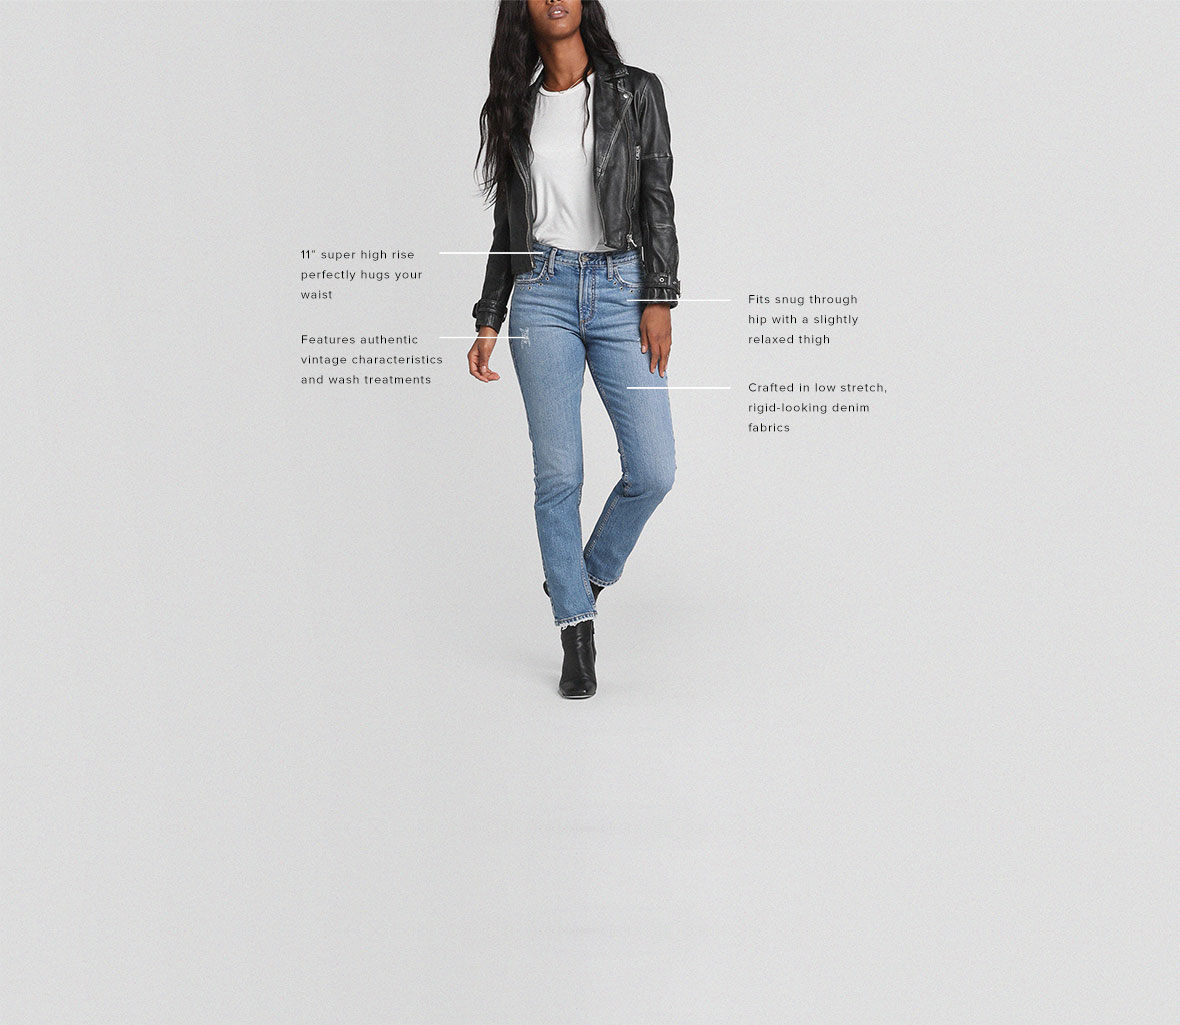 "-	11"" super high rise perfectly hugs your waist -	Fits snug through hip with a slightly relaxed thigh - Crafted in low-stretch, rigid-looking denim fabrics - Features authentic vintage characteristics and wash treatments"